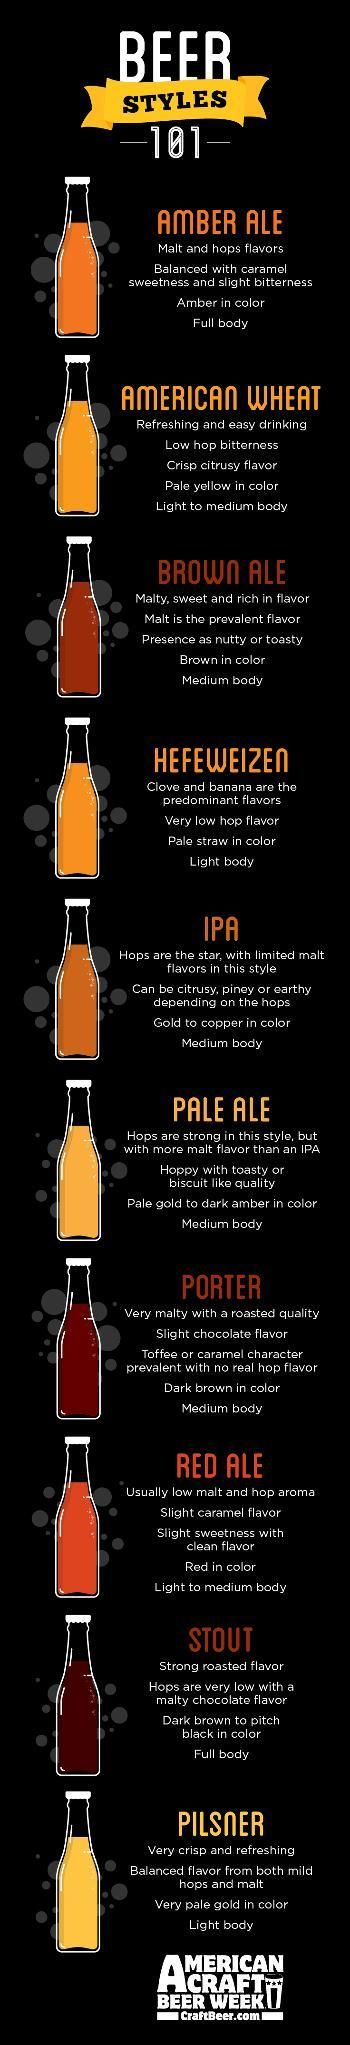 How well do you know your beer styles? Here's a handy guide.